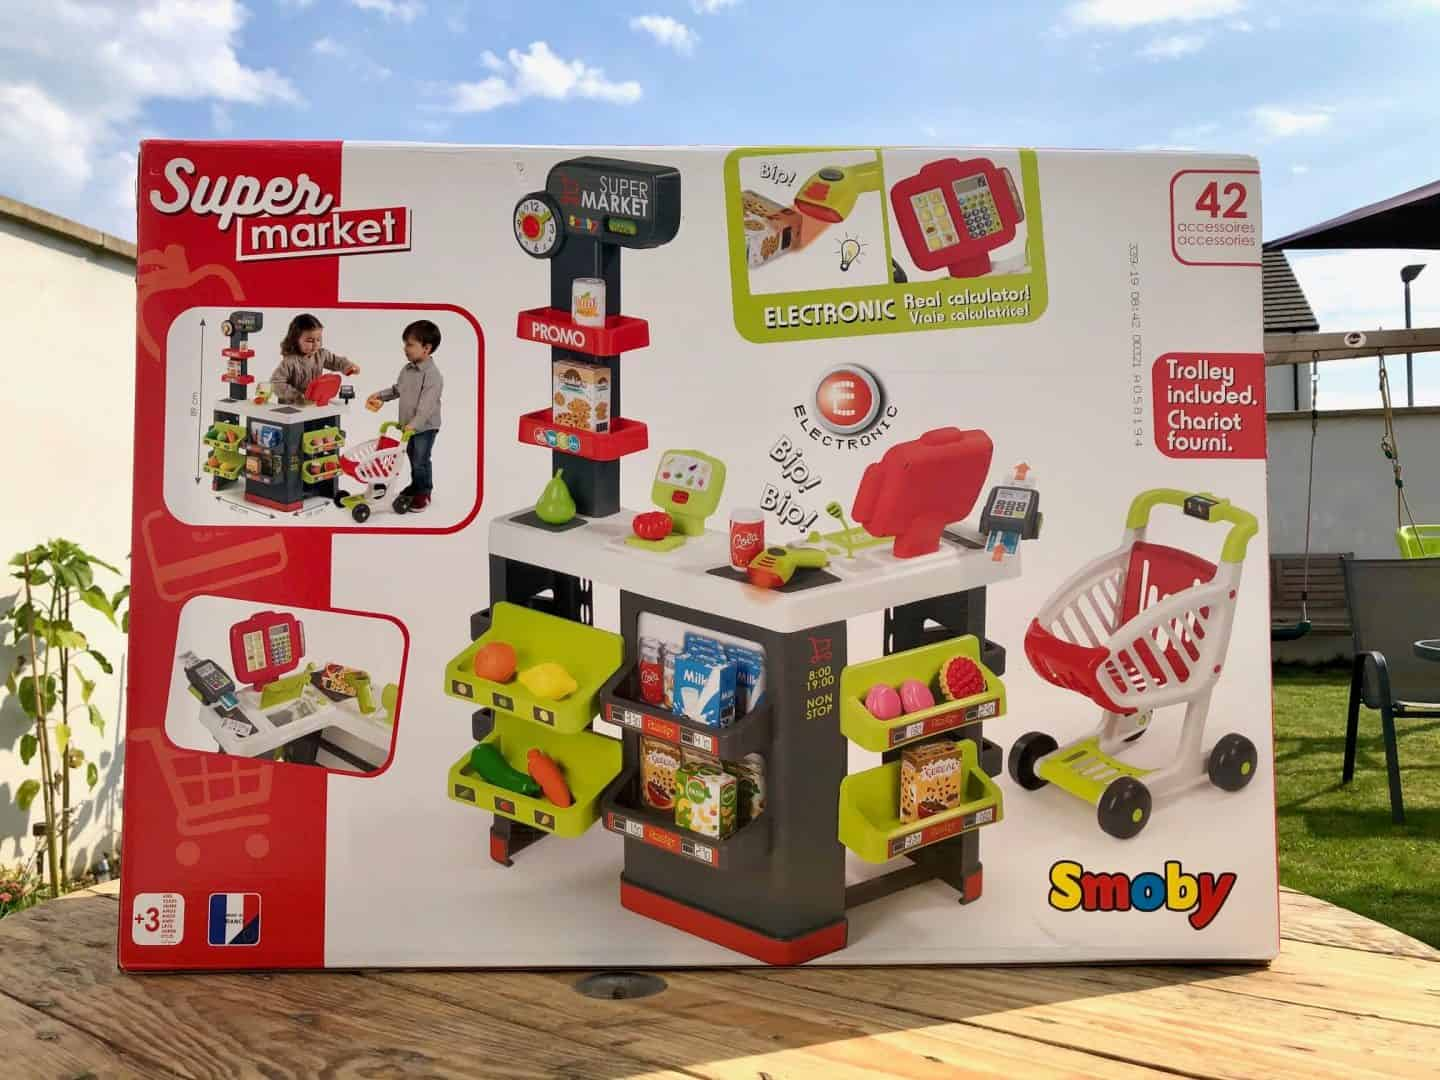 Fun Role-Playing With The SMOBY Supermarket Playset - Review